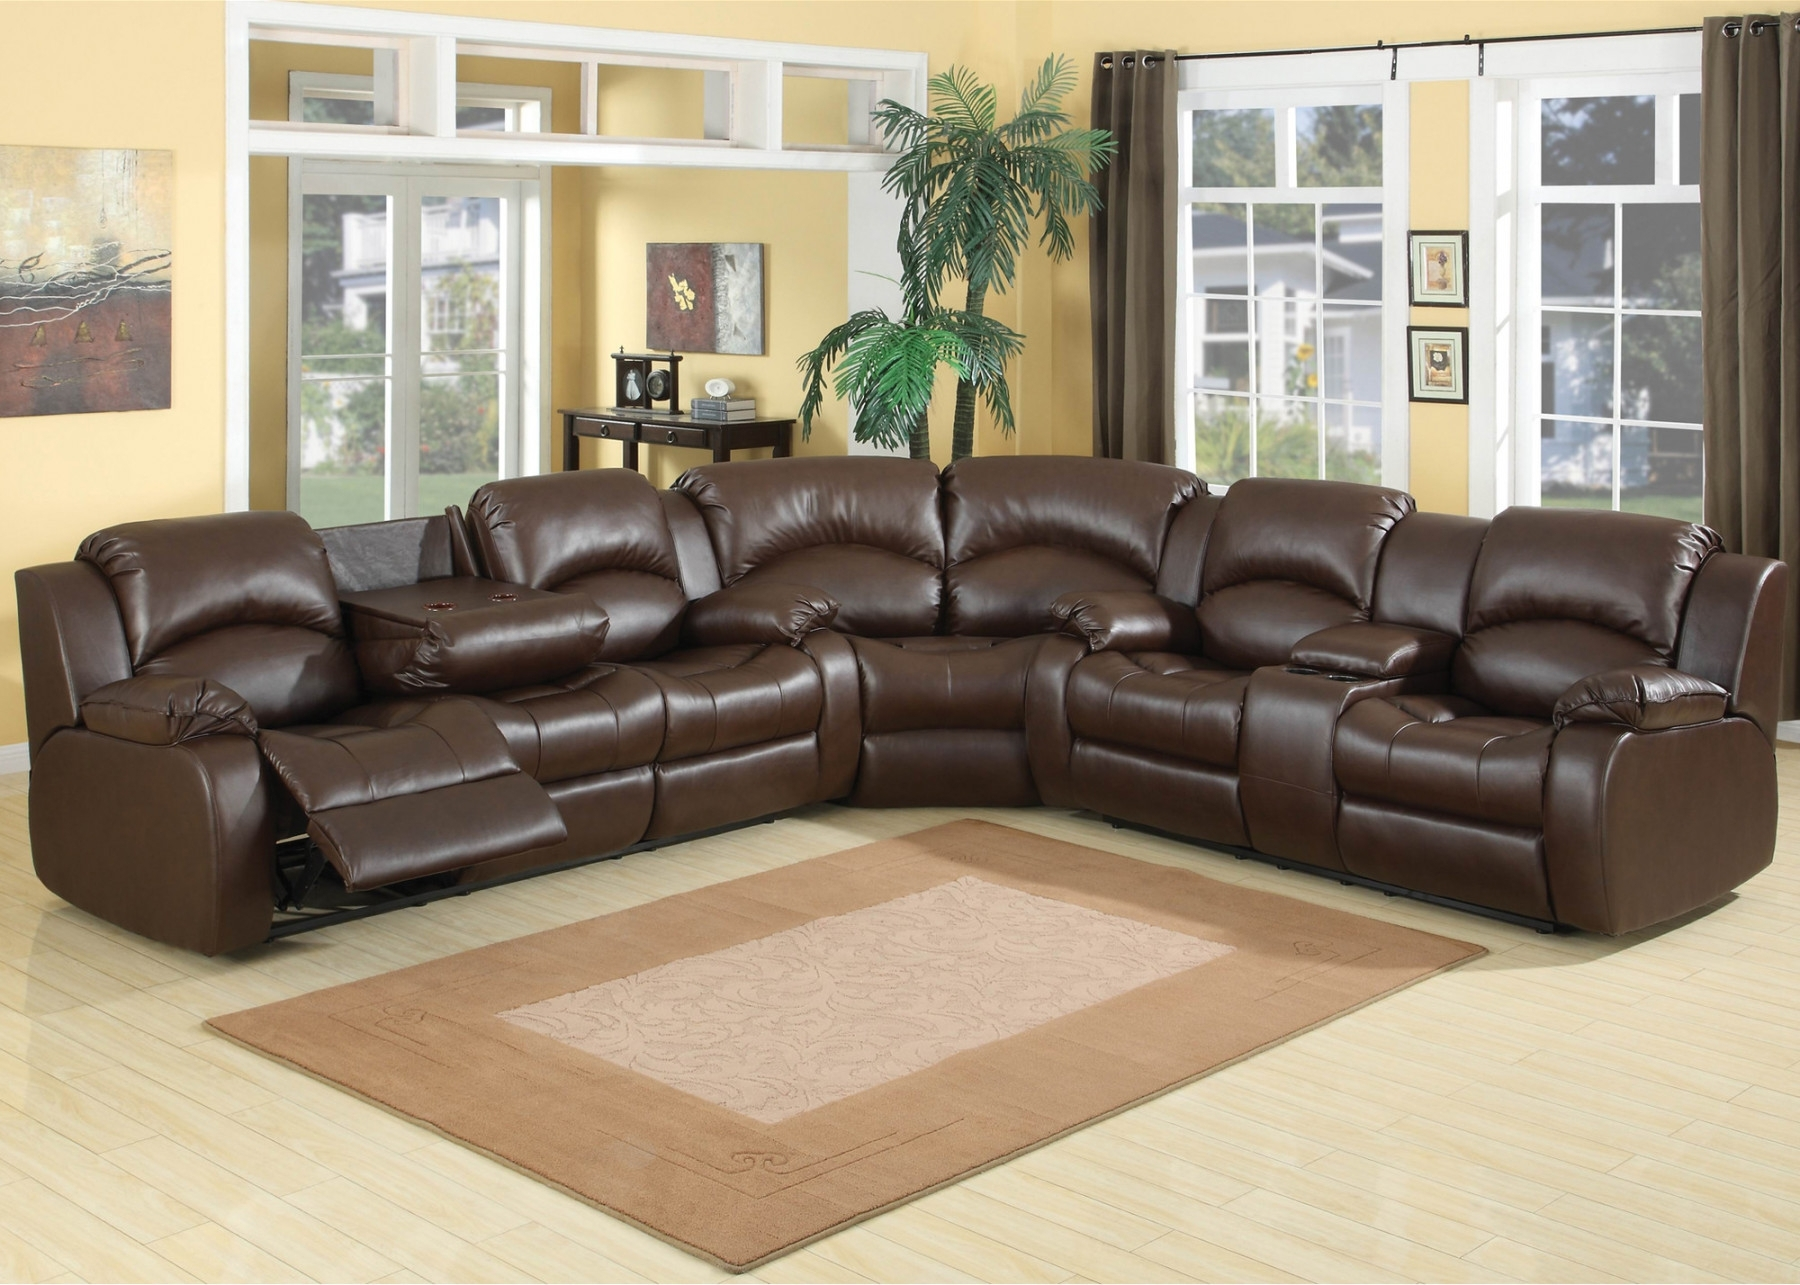 Los Angeles Sectional Sofas With Well Liked Sectional Sofas Los Angeles (View 7 of 20)